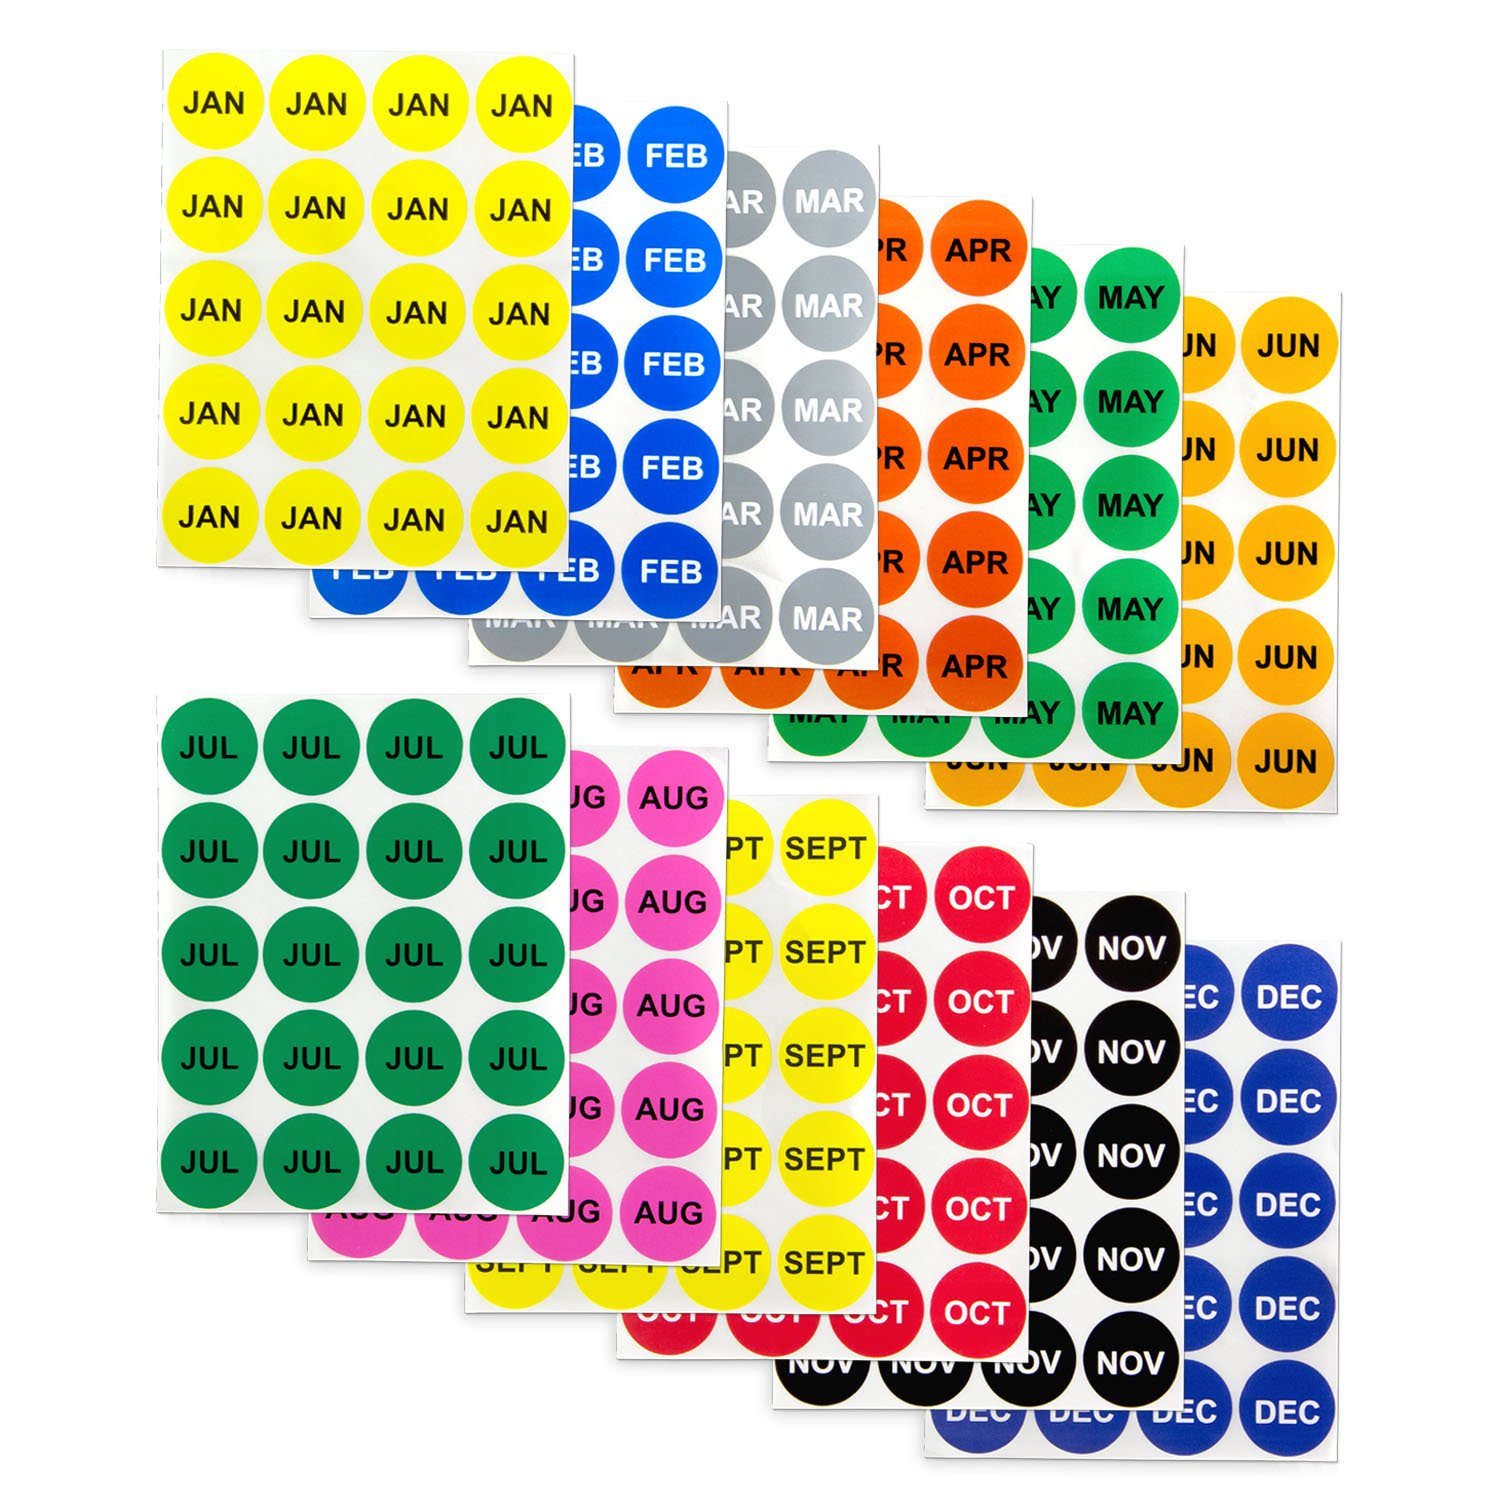 12 Months of the Year Labels Color Coding Dot Round Self Adhesive Stickers (1'' Round Dot Stickers) - 300 stickers per Month - 3600 stickers total by OfficeSmartLabels (Image #1)